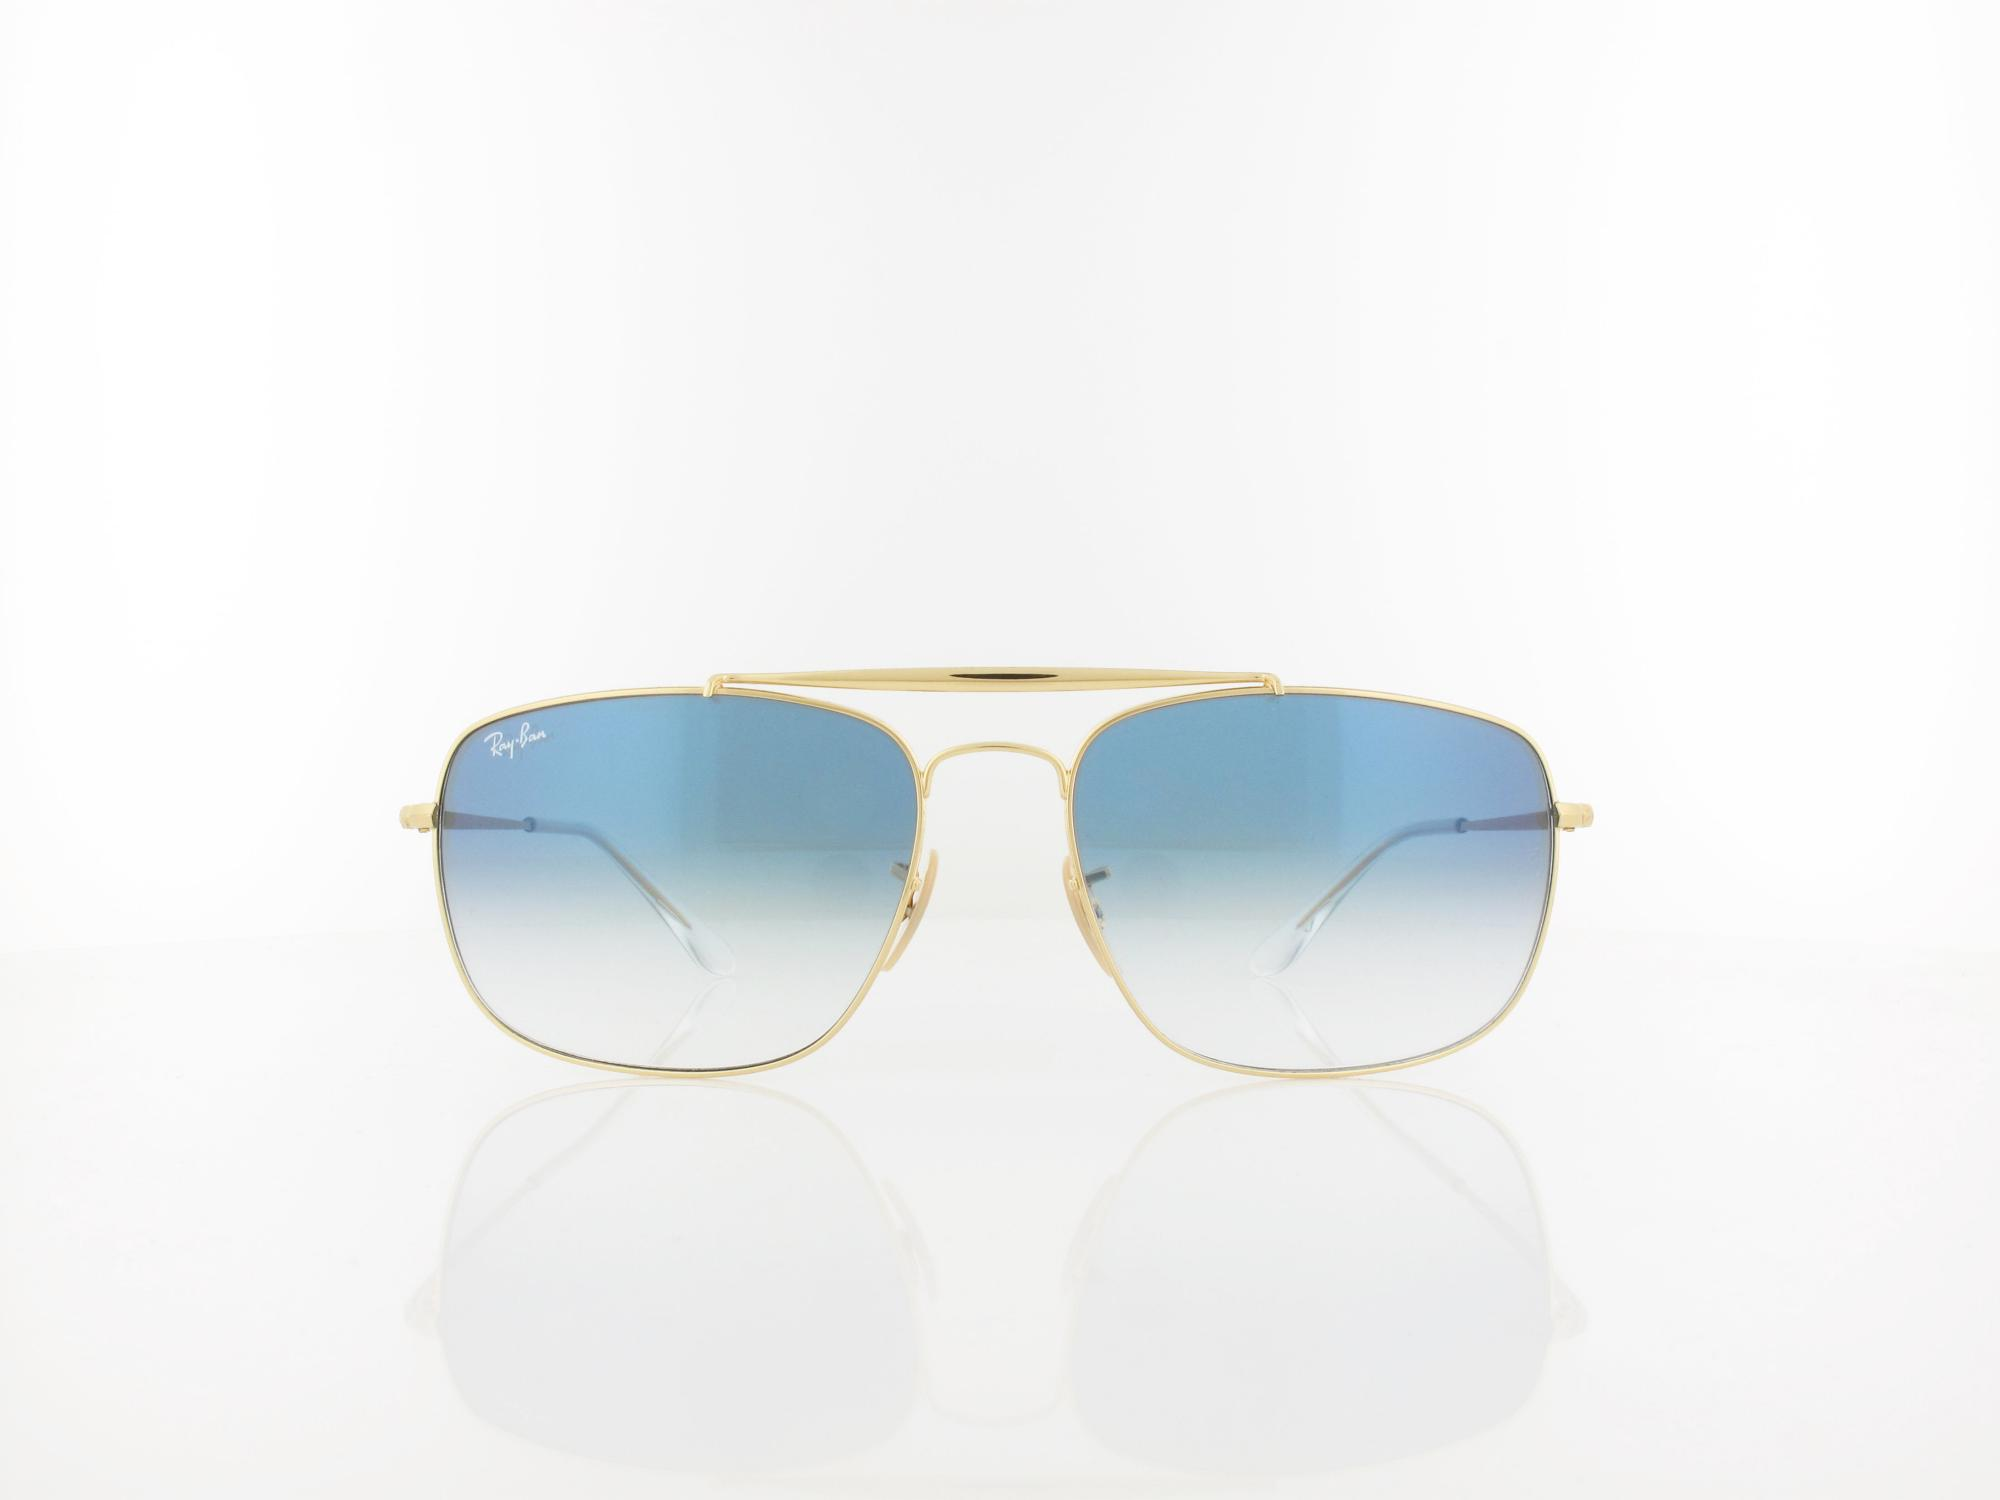 Ray Ban | THE COLONEL RB3560 001/3F 61 | gold / clear gradient blue